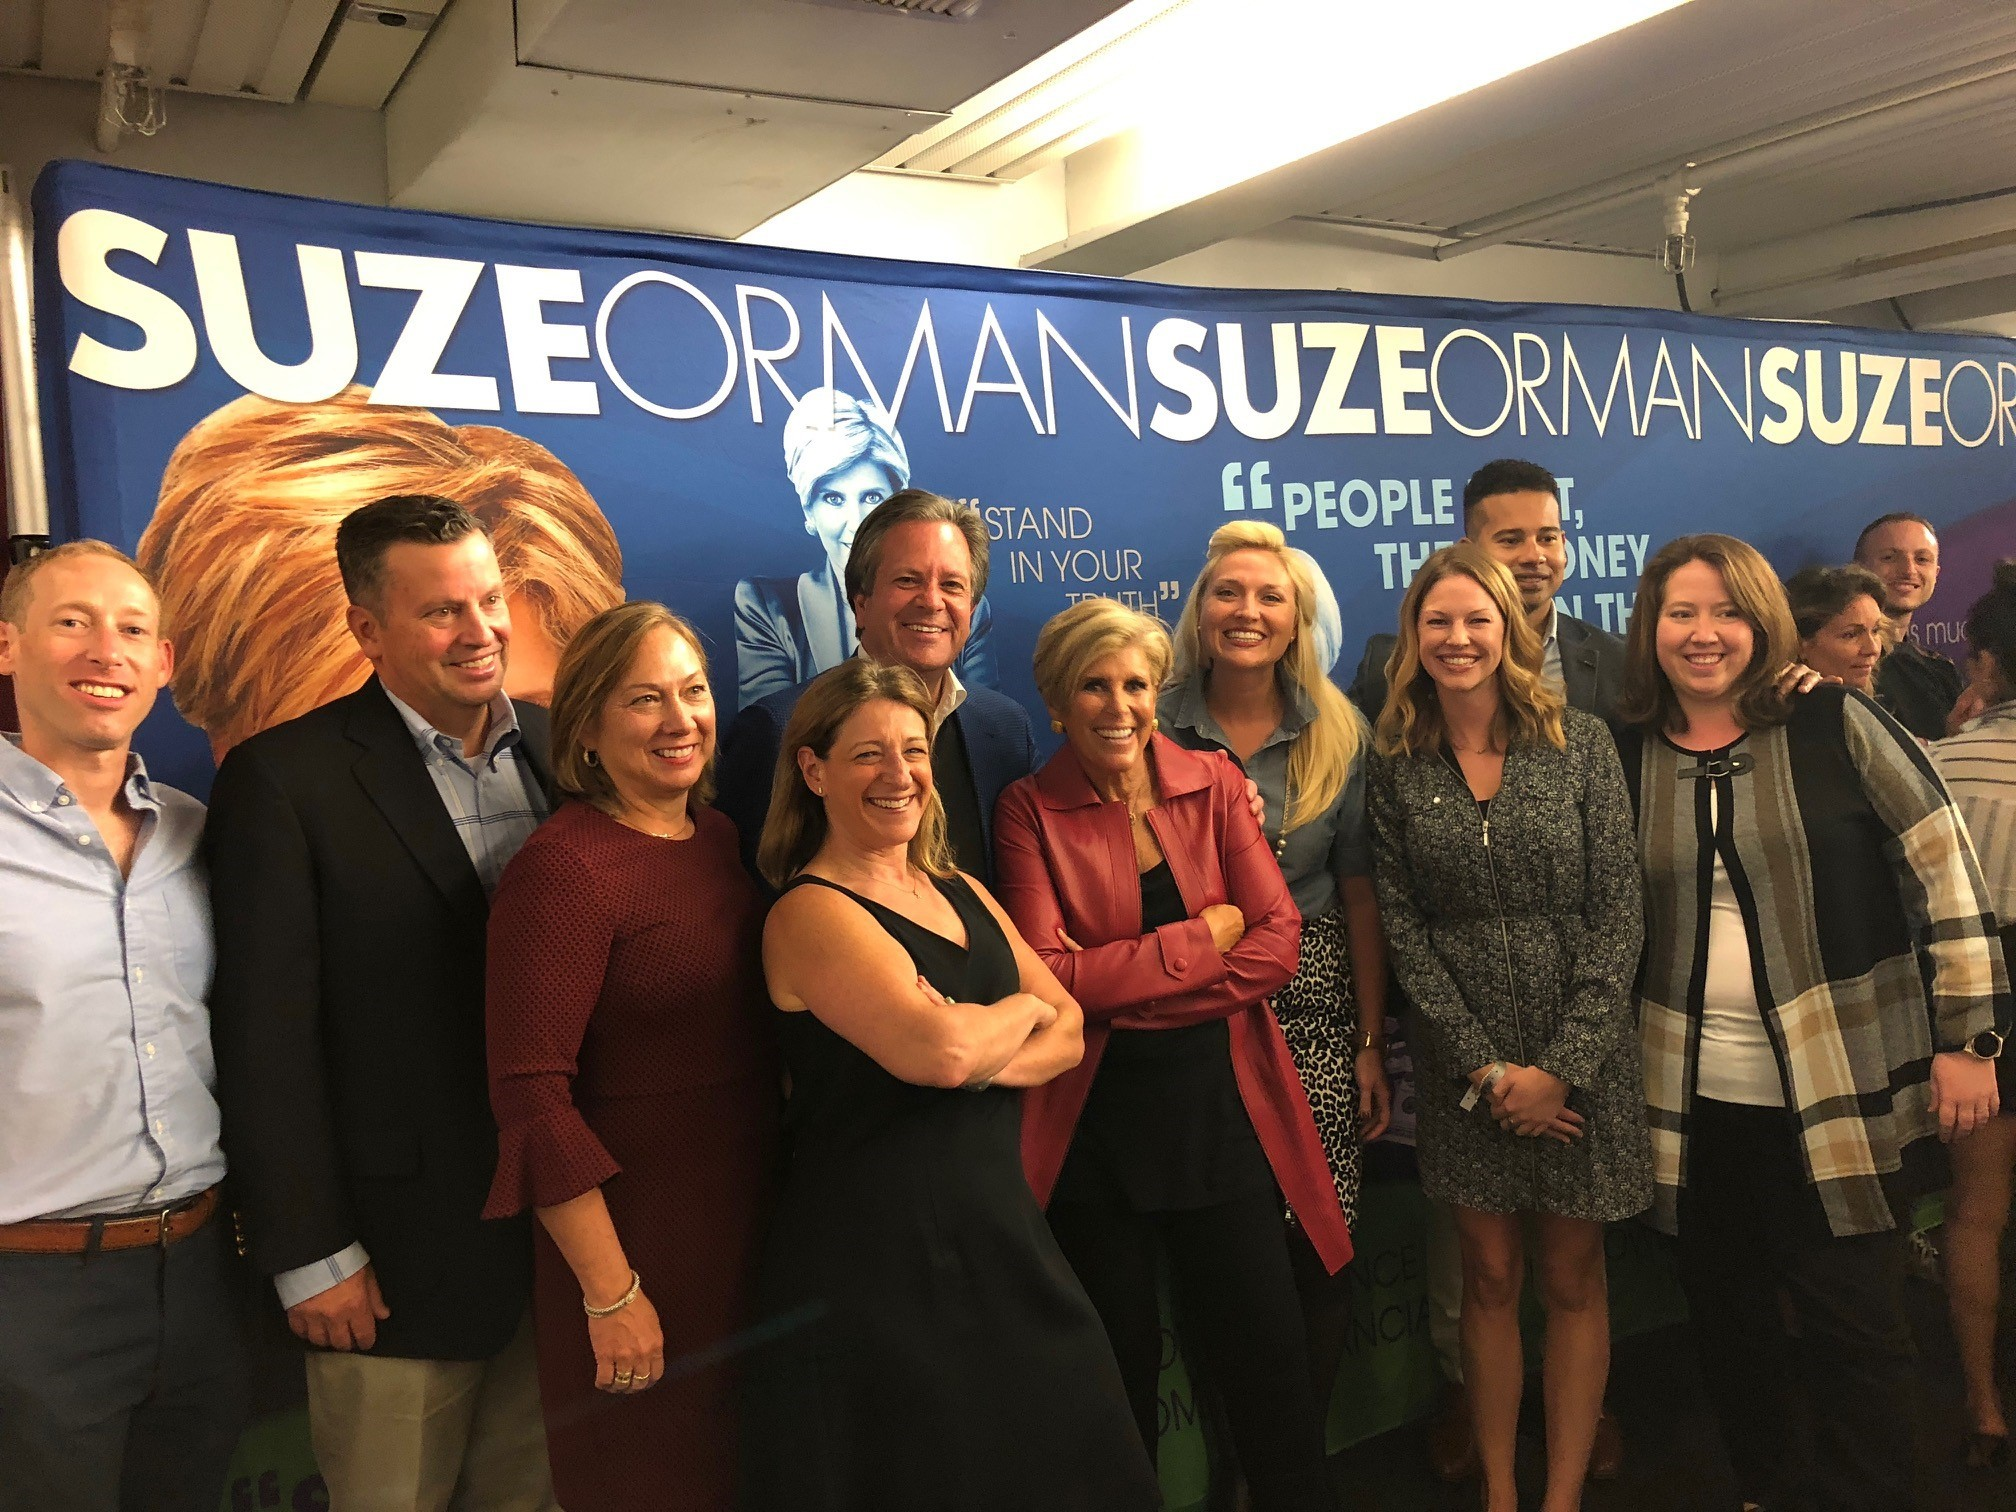 Suze Orman at the Apollo Theatre